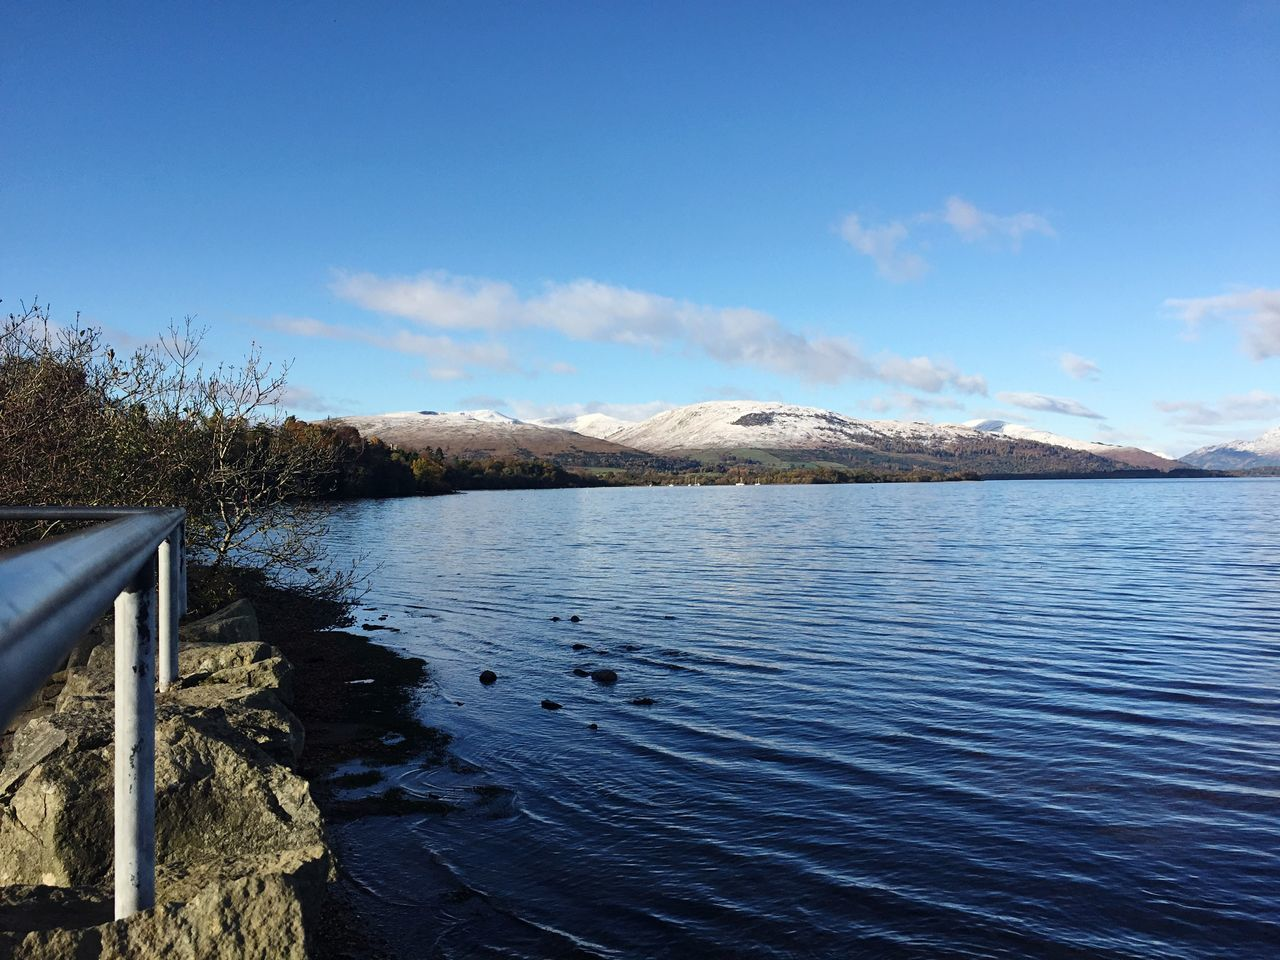 Mountain Range Beauty In Nature Scenics Tranquil Scene Idyllic Landscape Outdoors No People Day Snowcapped Mountain Weather LochLomond Remote Rural Scene Blue Water Waterfront